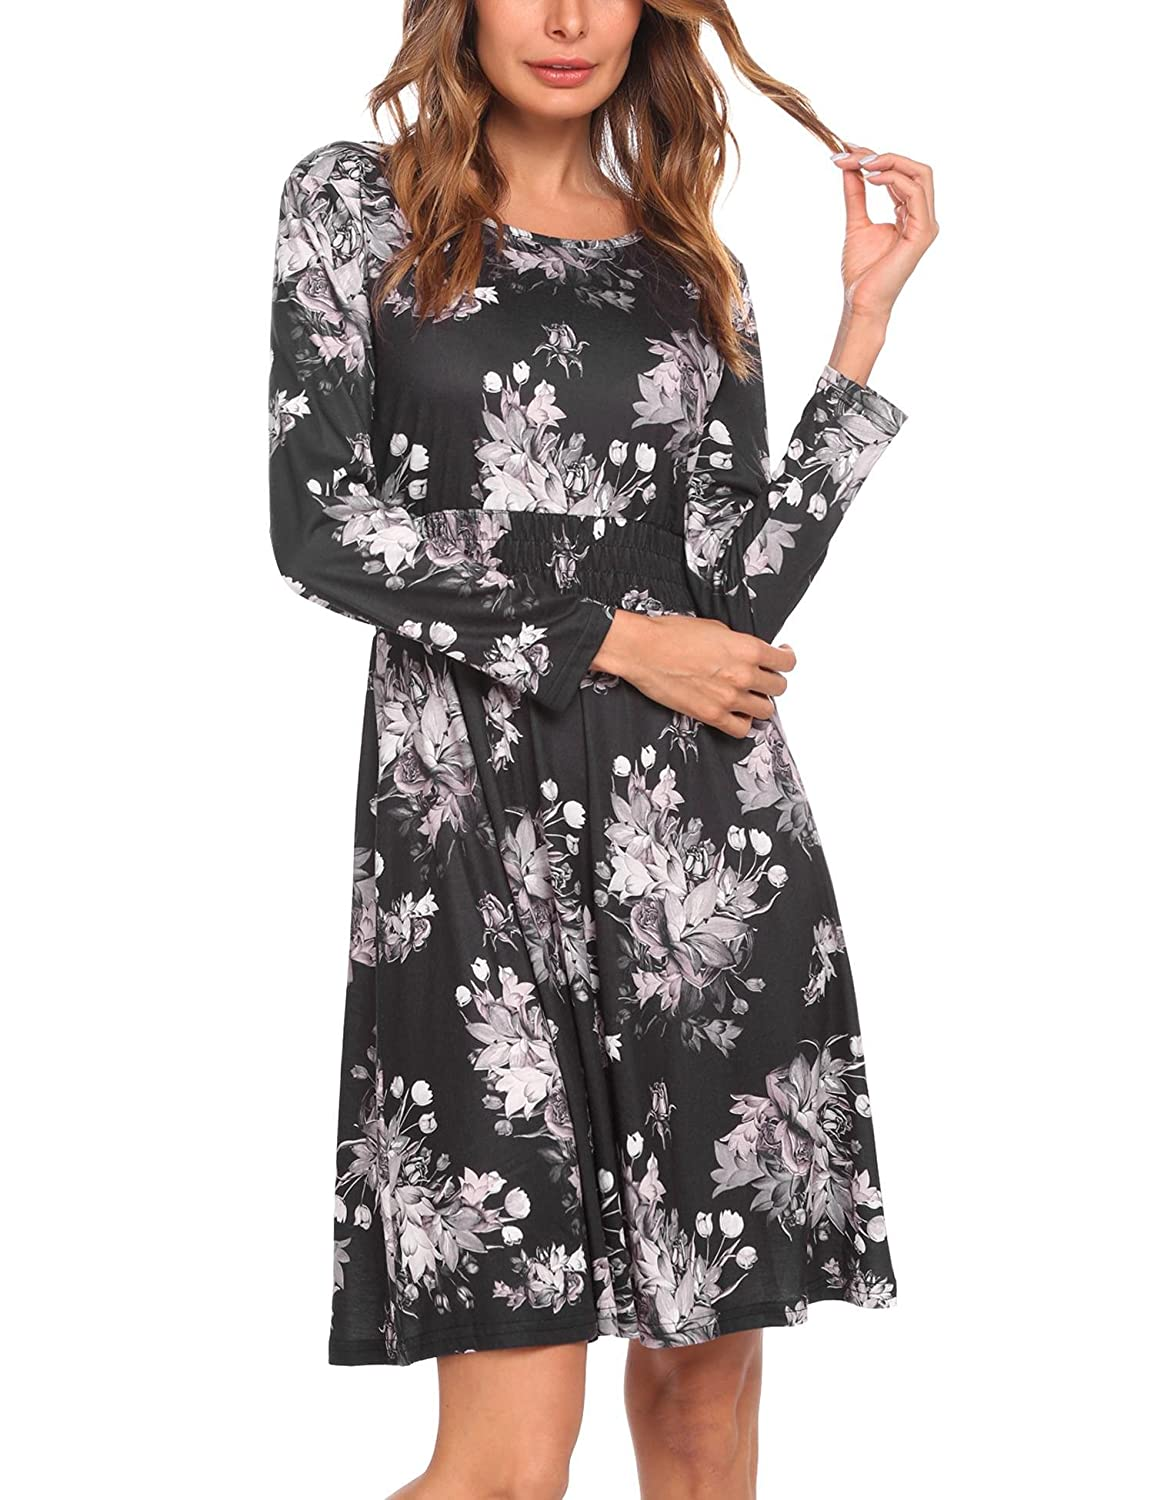 Pinsparkle Women Casual Long Sleeve Floral Print Fit And Flare Dress